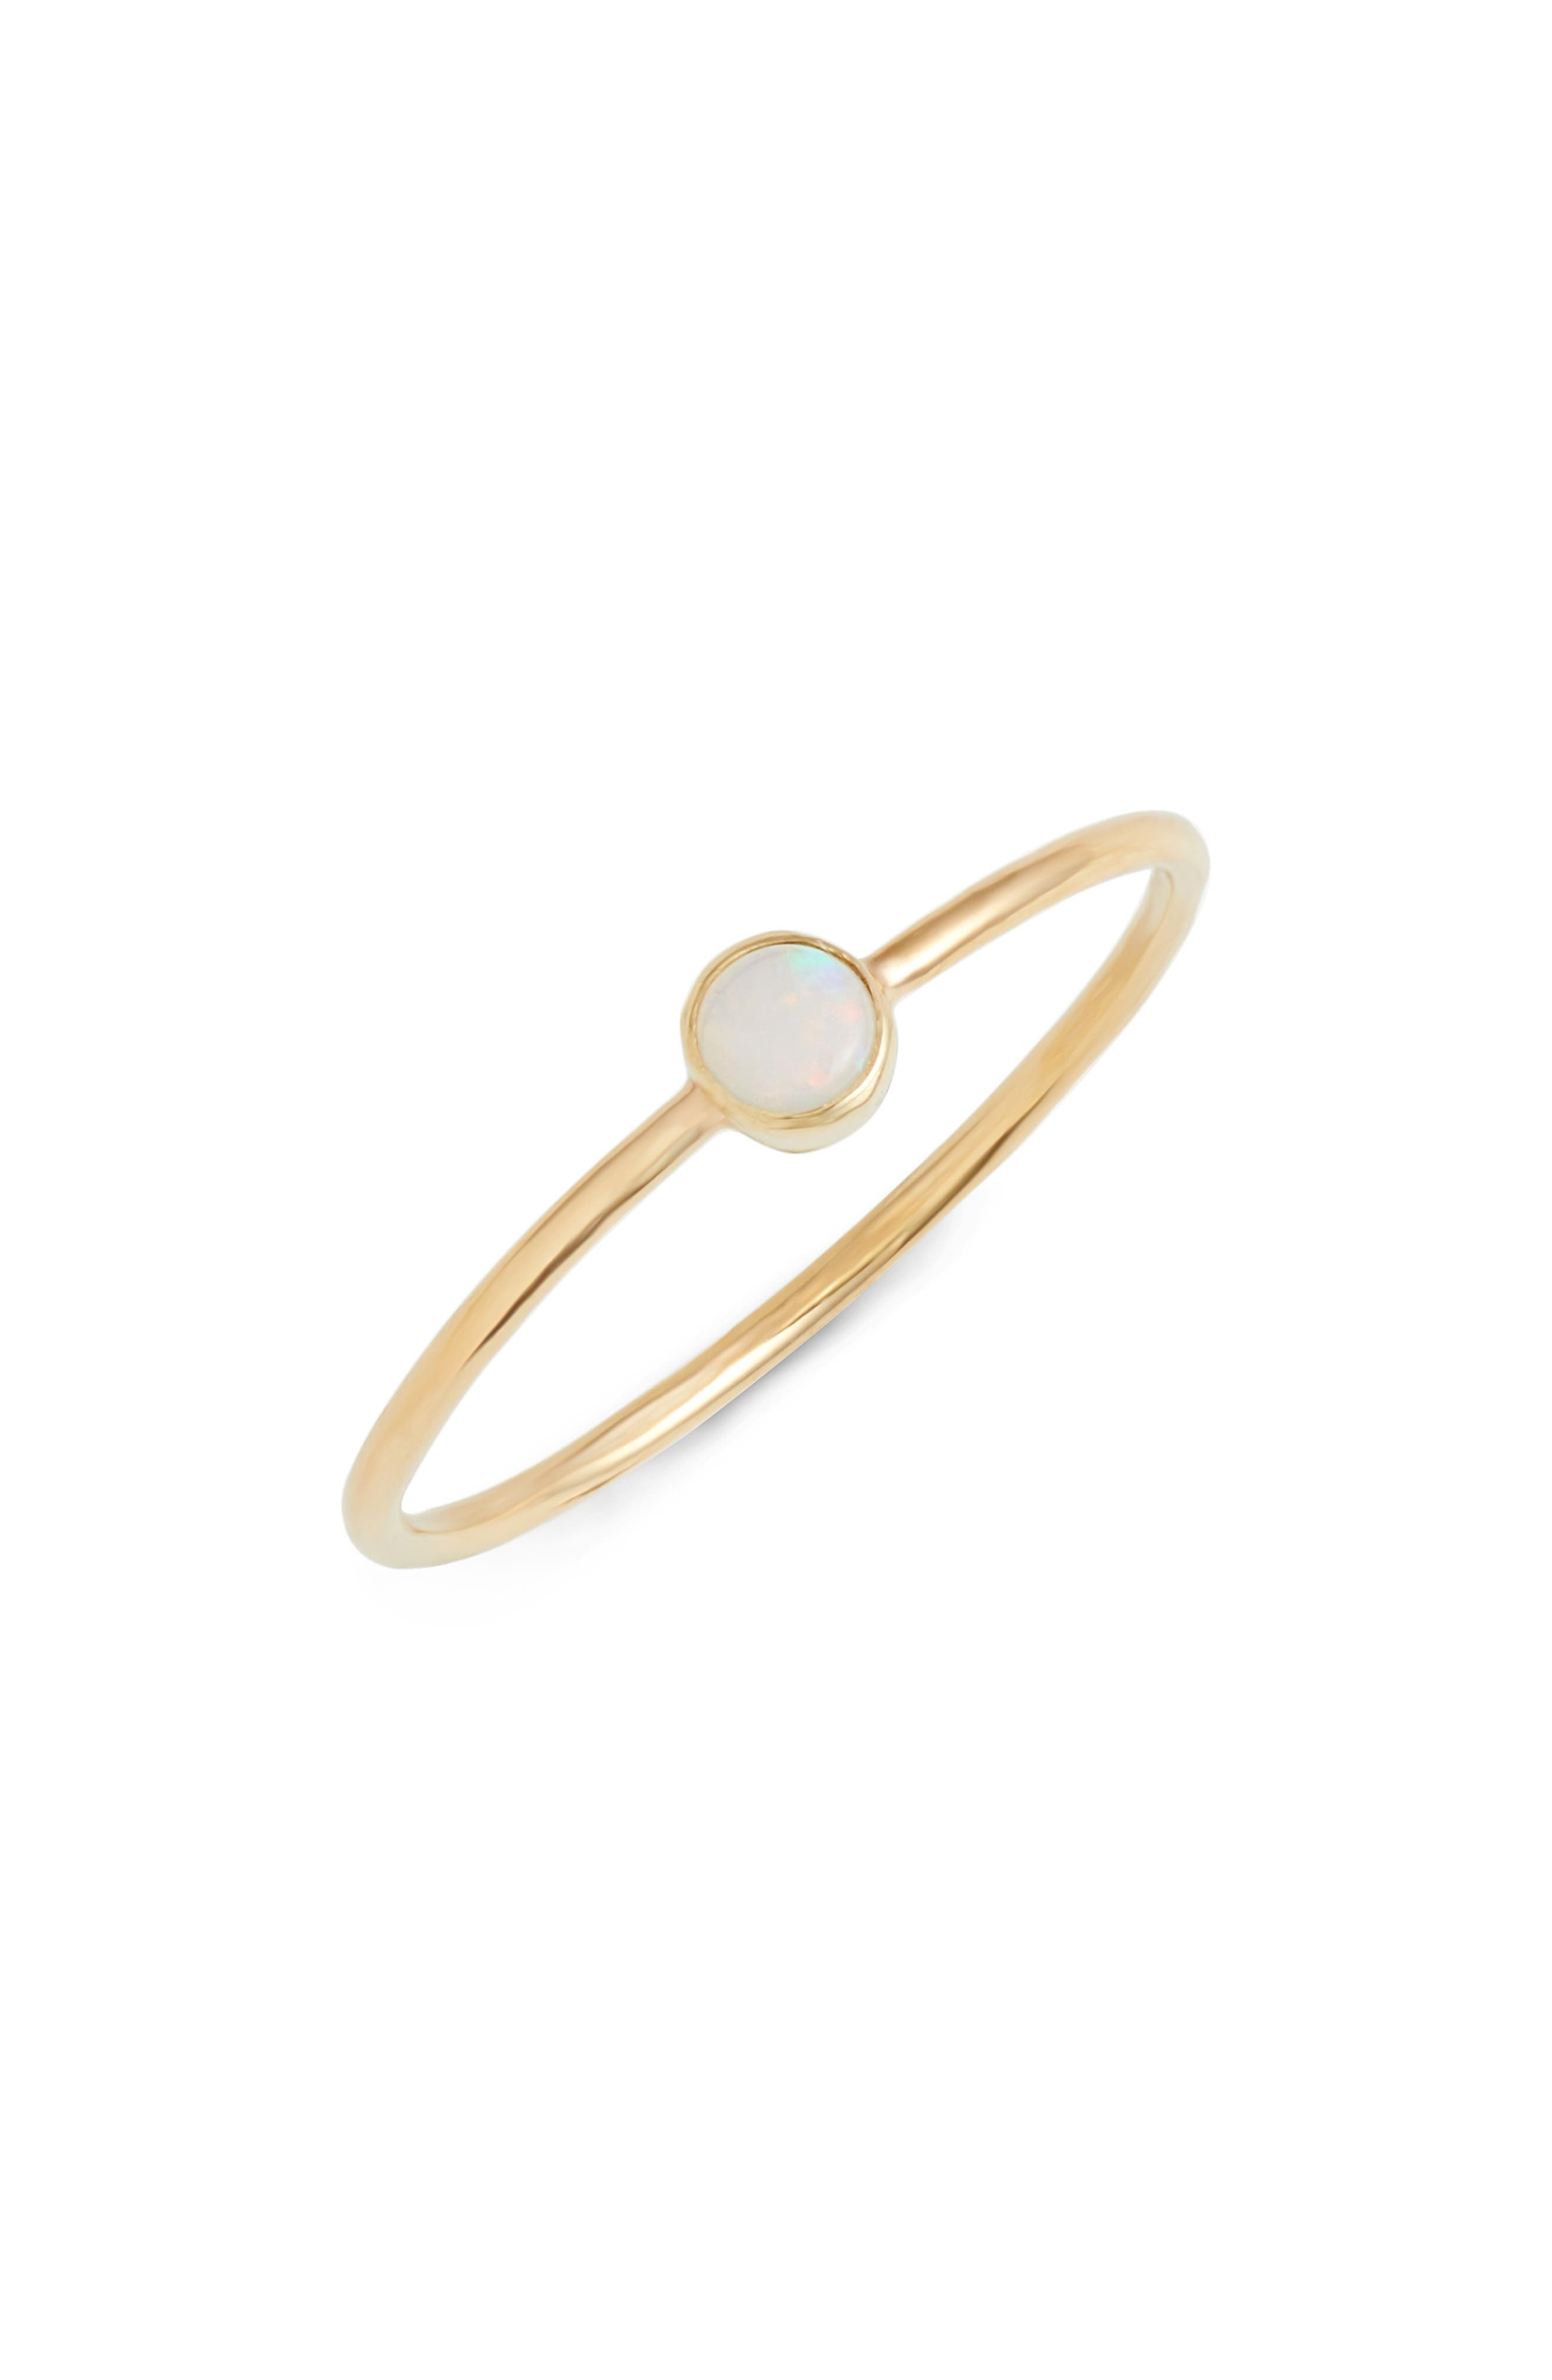 ZOË CHICCO Opal Stacking Ring, Main, color, YELLOW GOLD/ OPAL